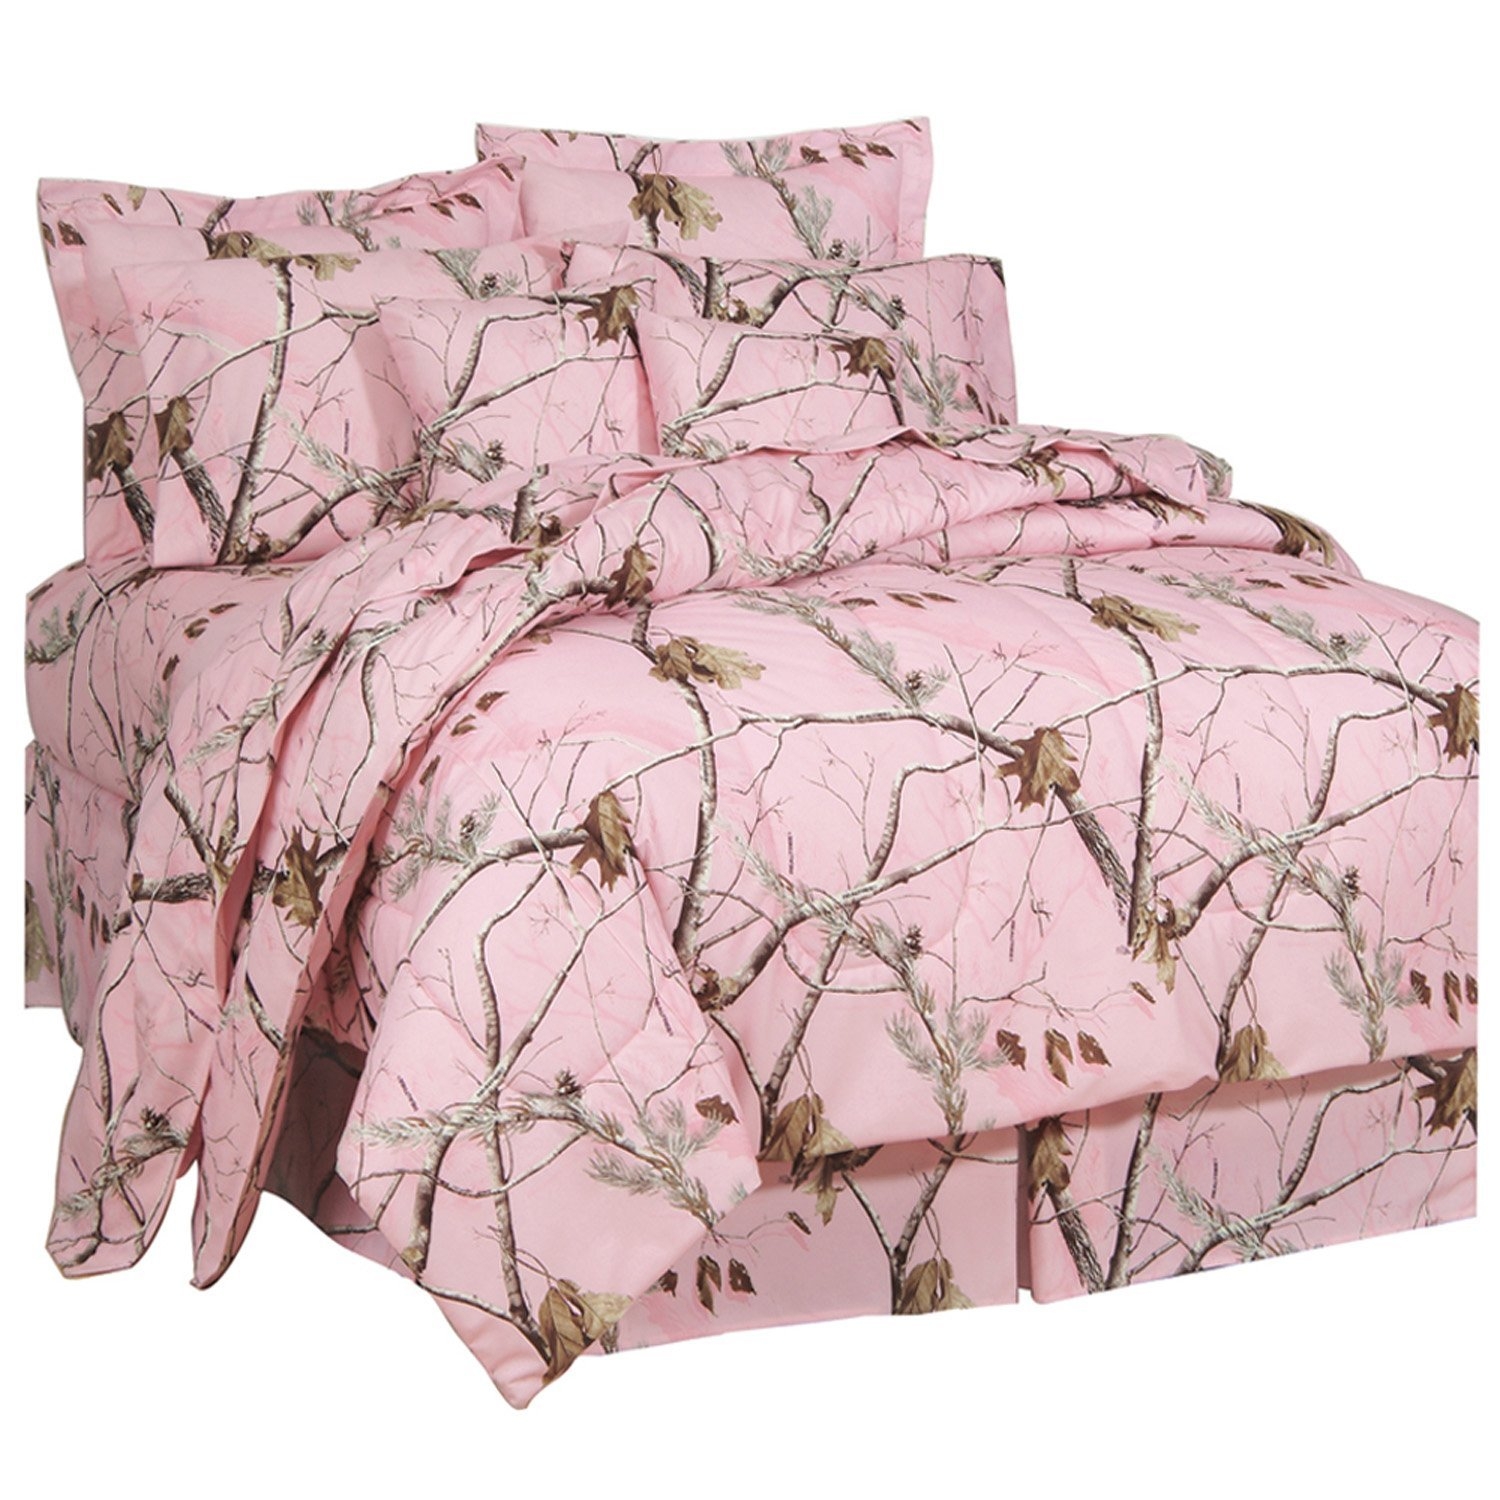 Pink Bedding Sets for Adults and Toddlers